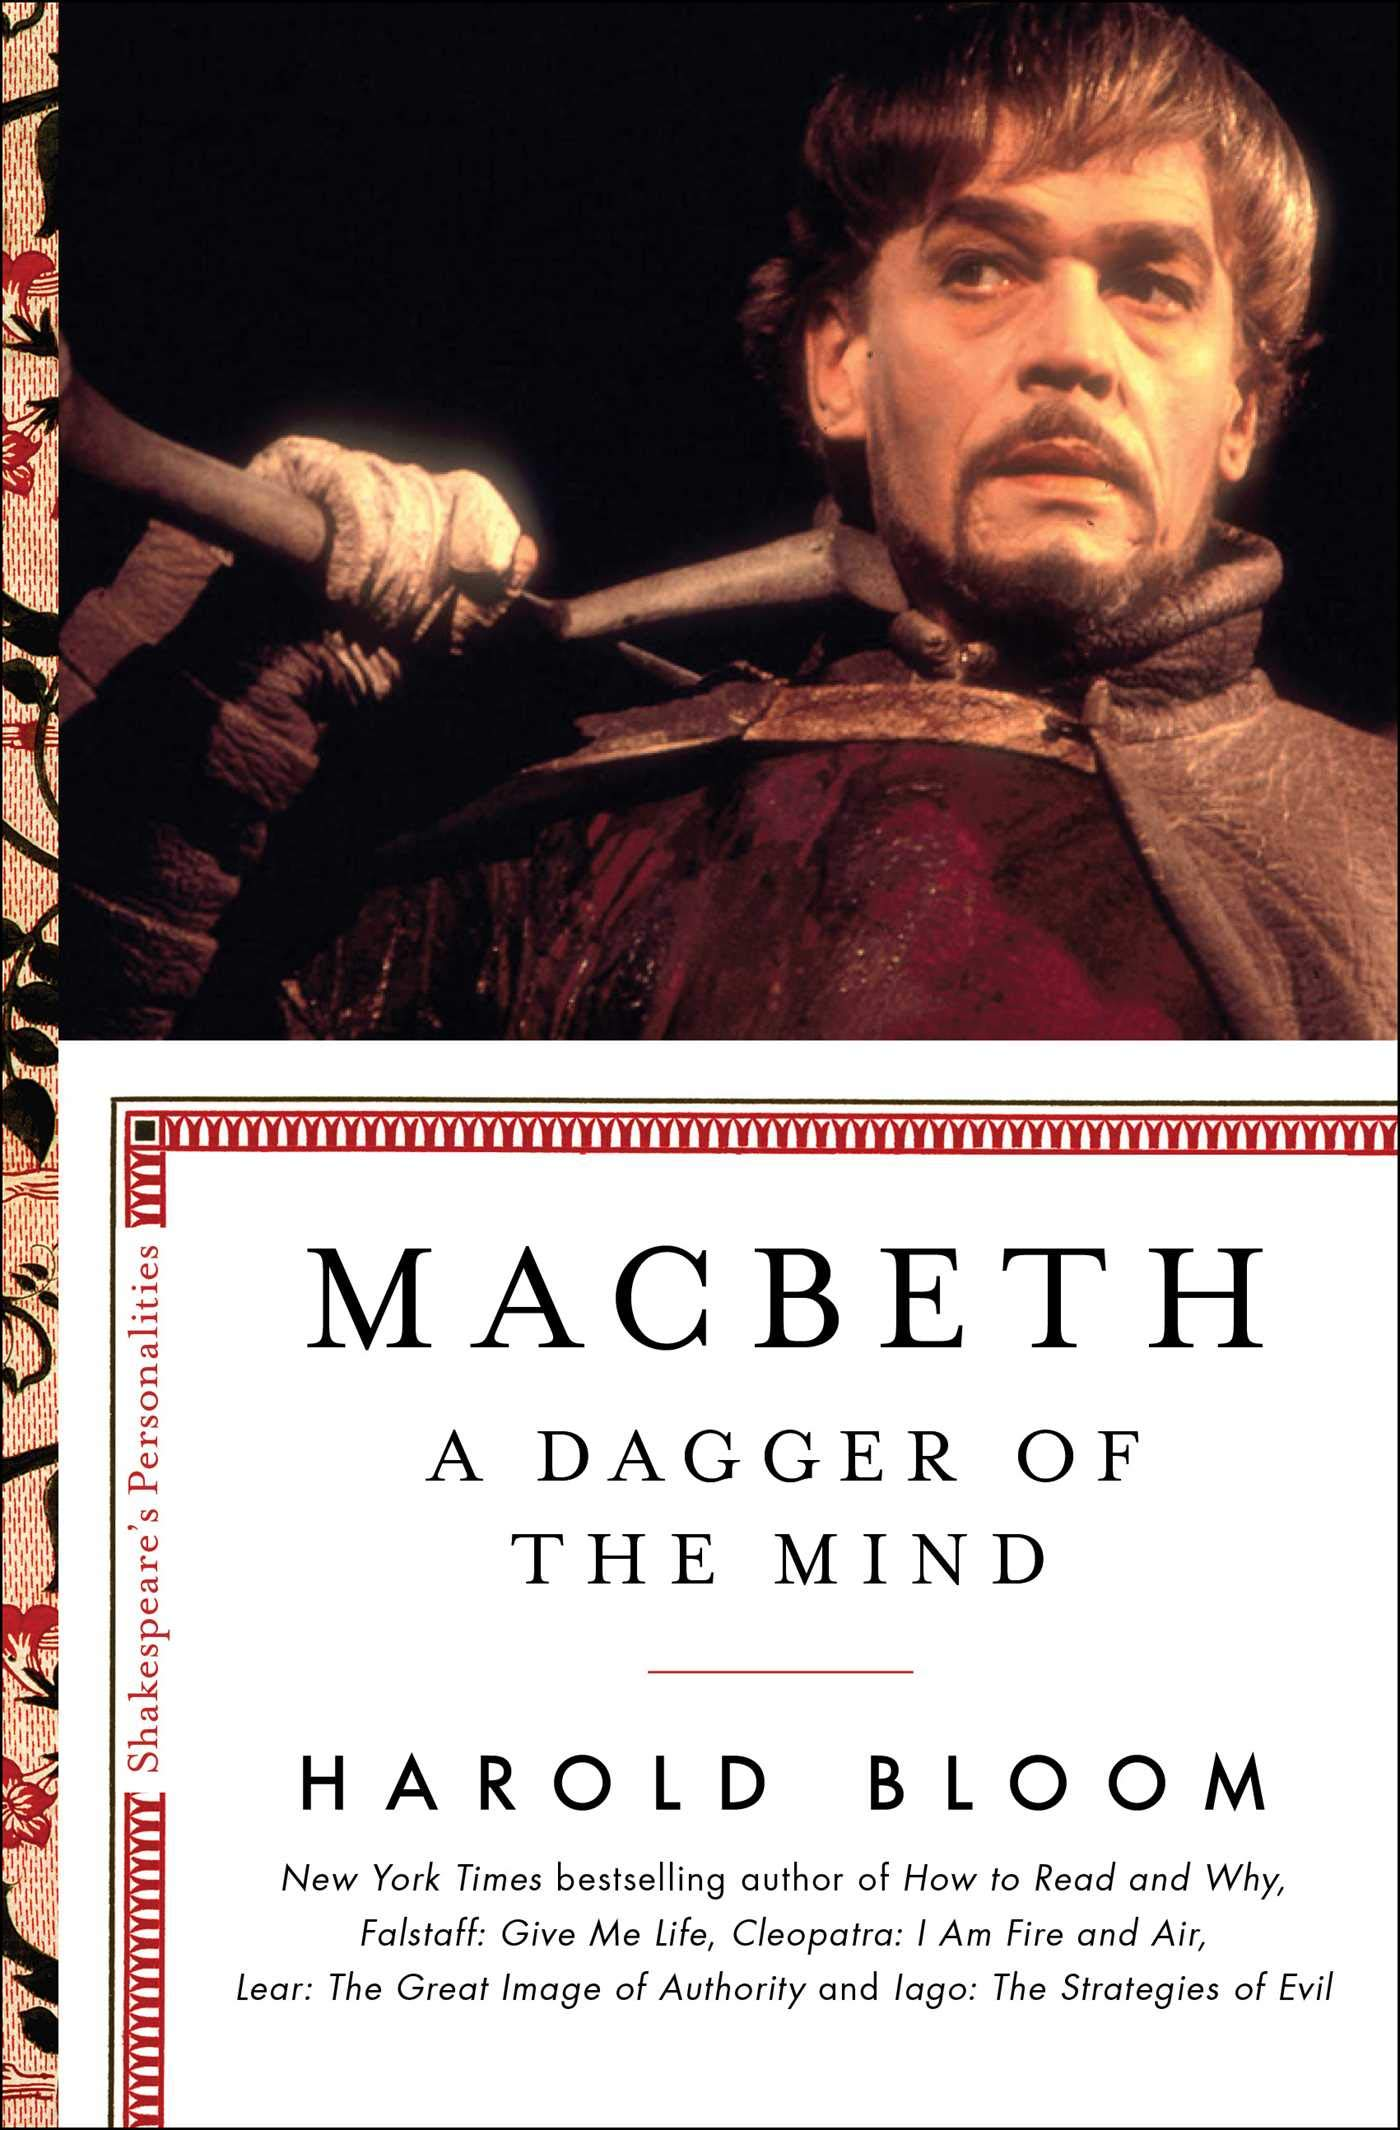 dagger of the mind shakespeare